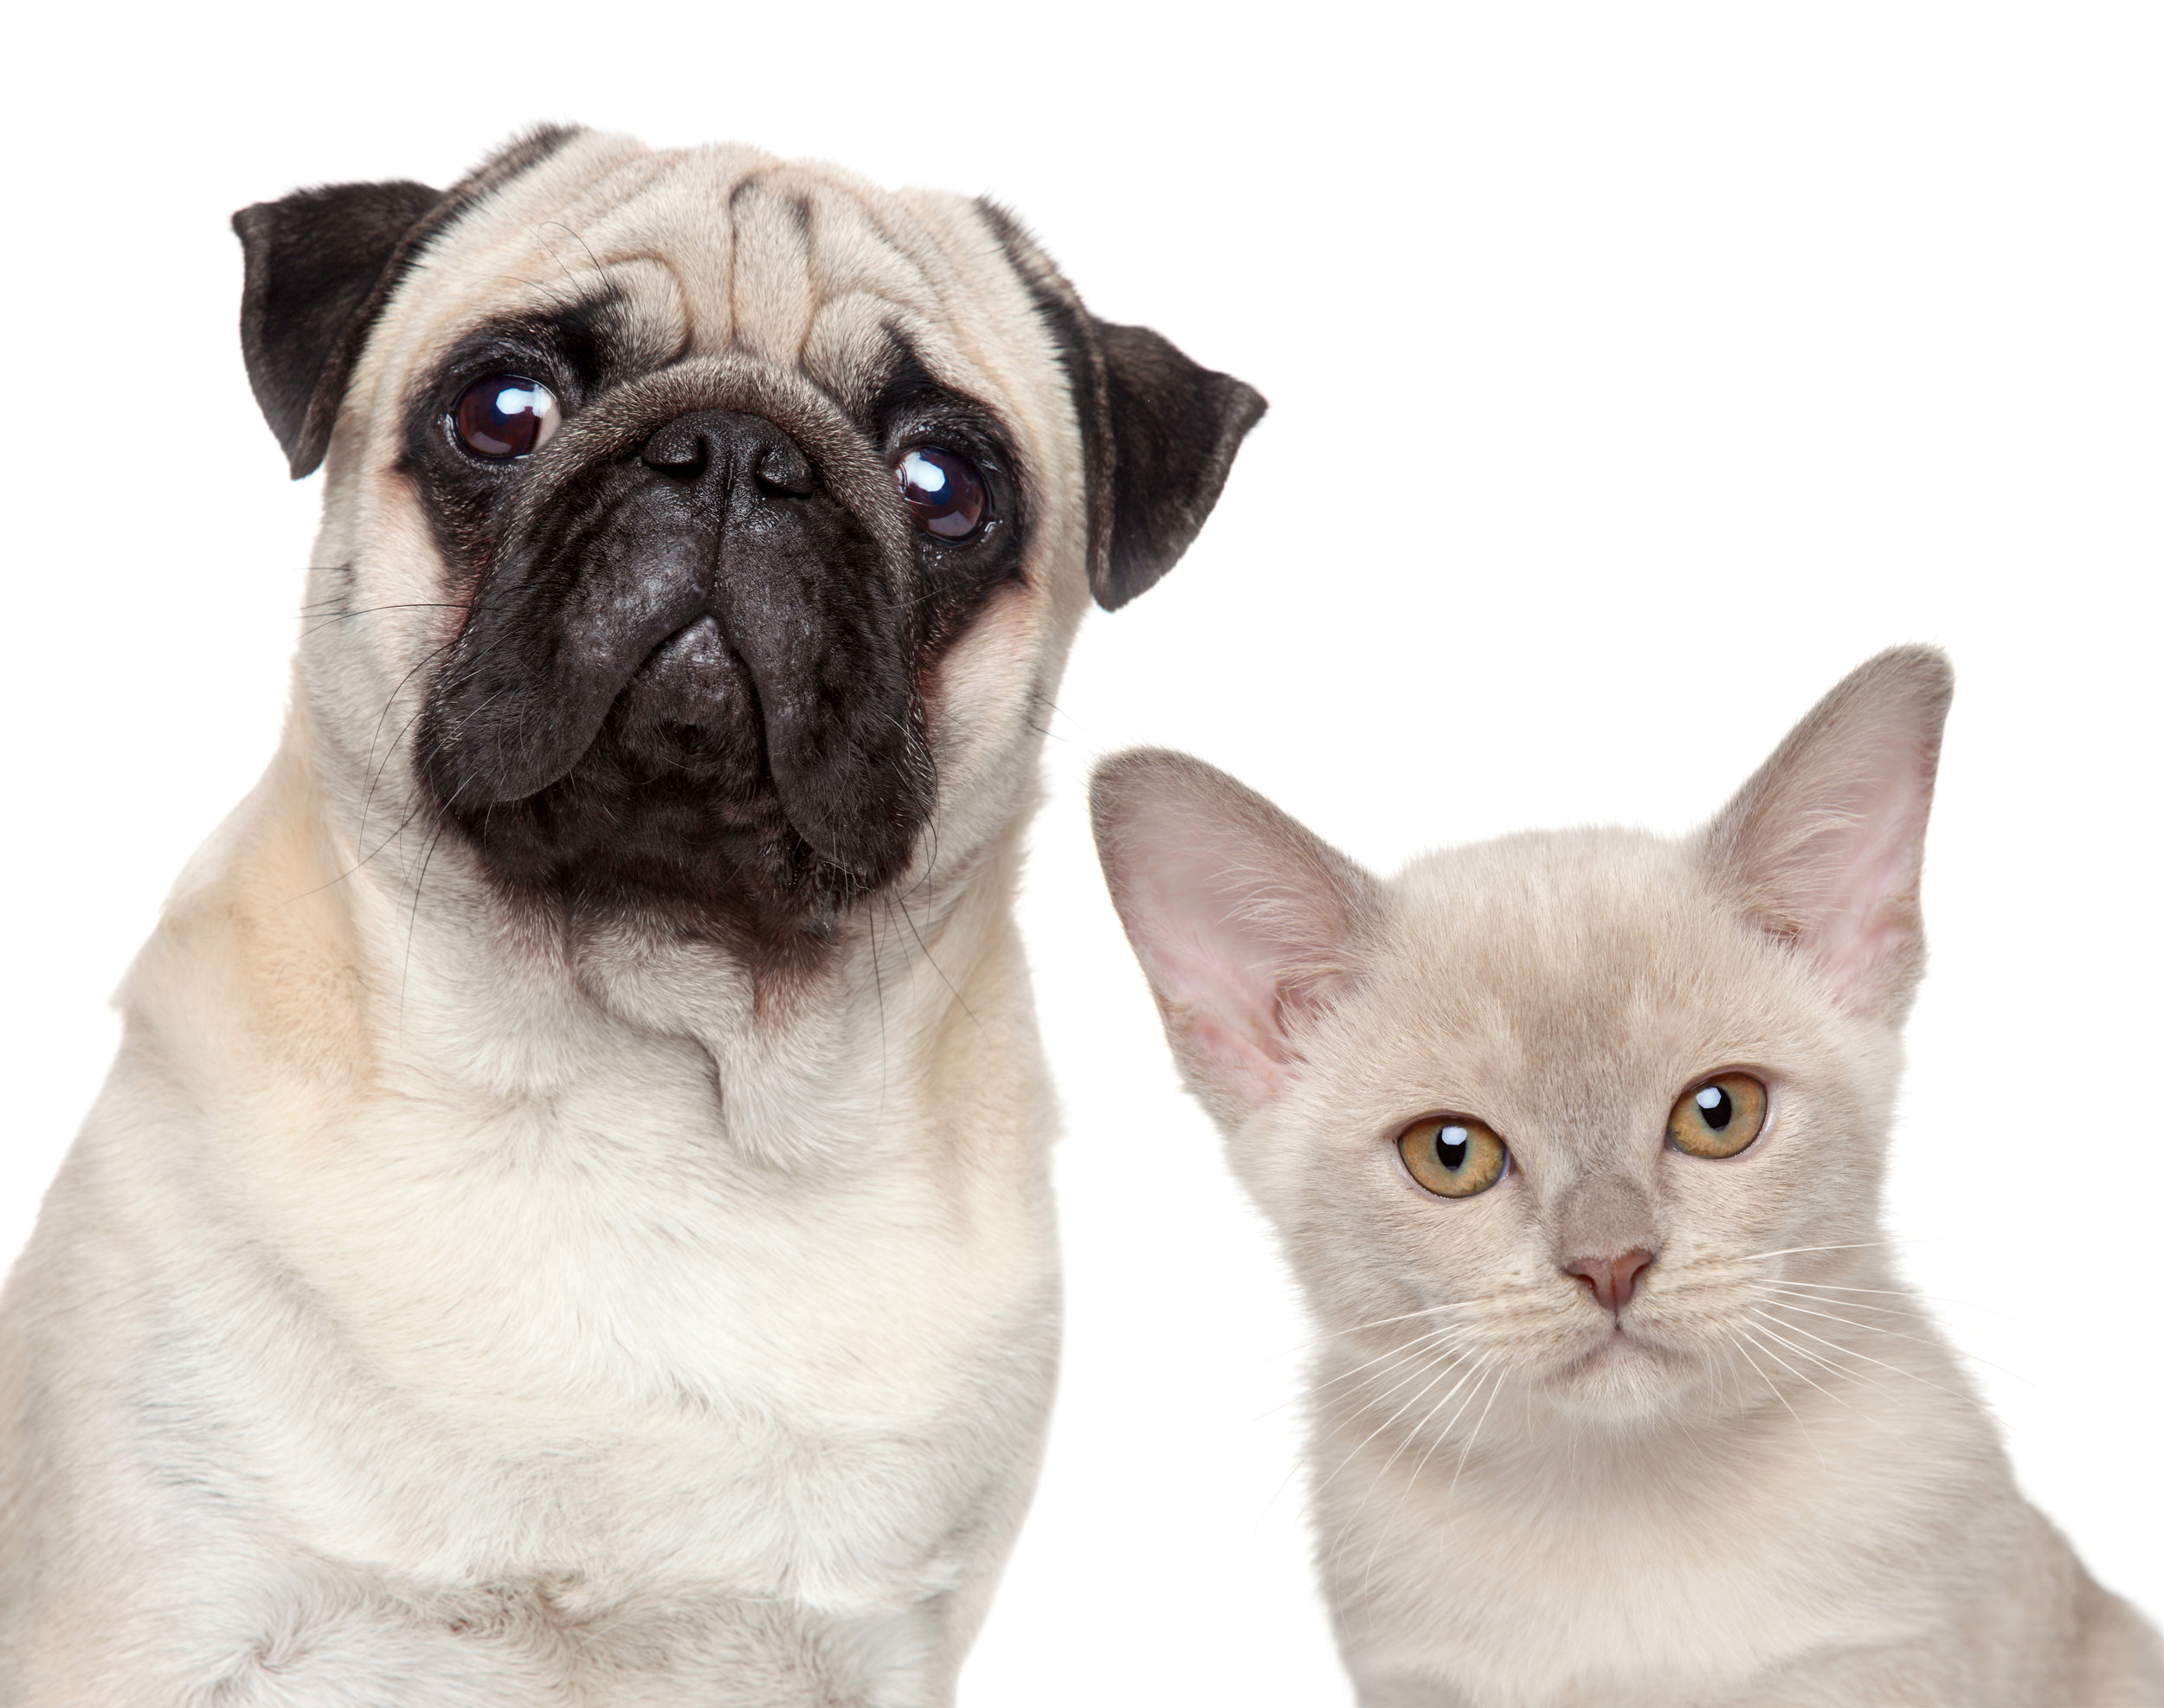 Long-distance phone consult with best veterinary behaviorist for dog aggression, separation anxiety, fear, dog bites, cat aggression, cat peeing, dominant dog, alpha dog, dominant cat.